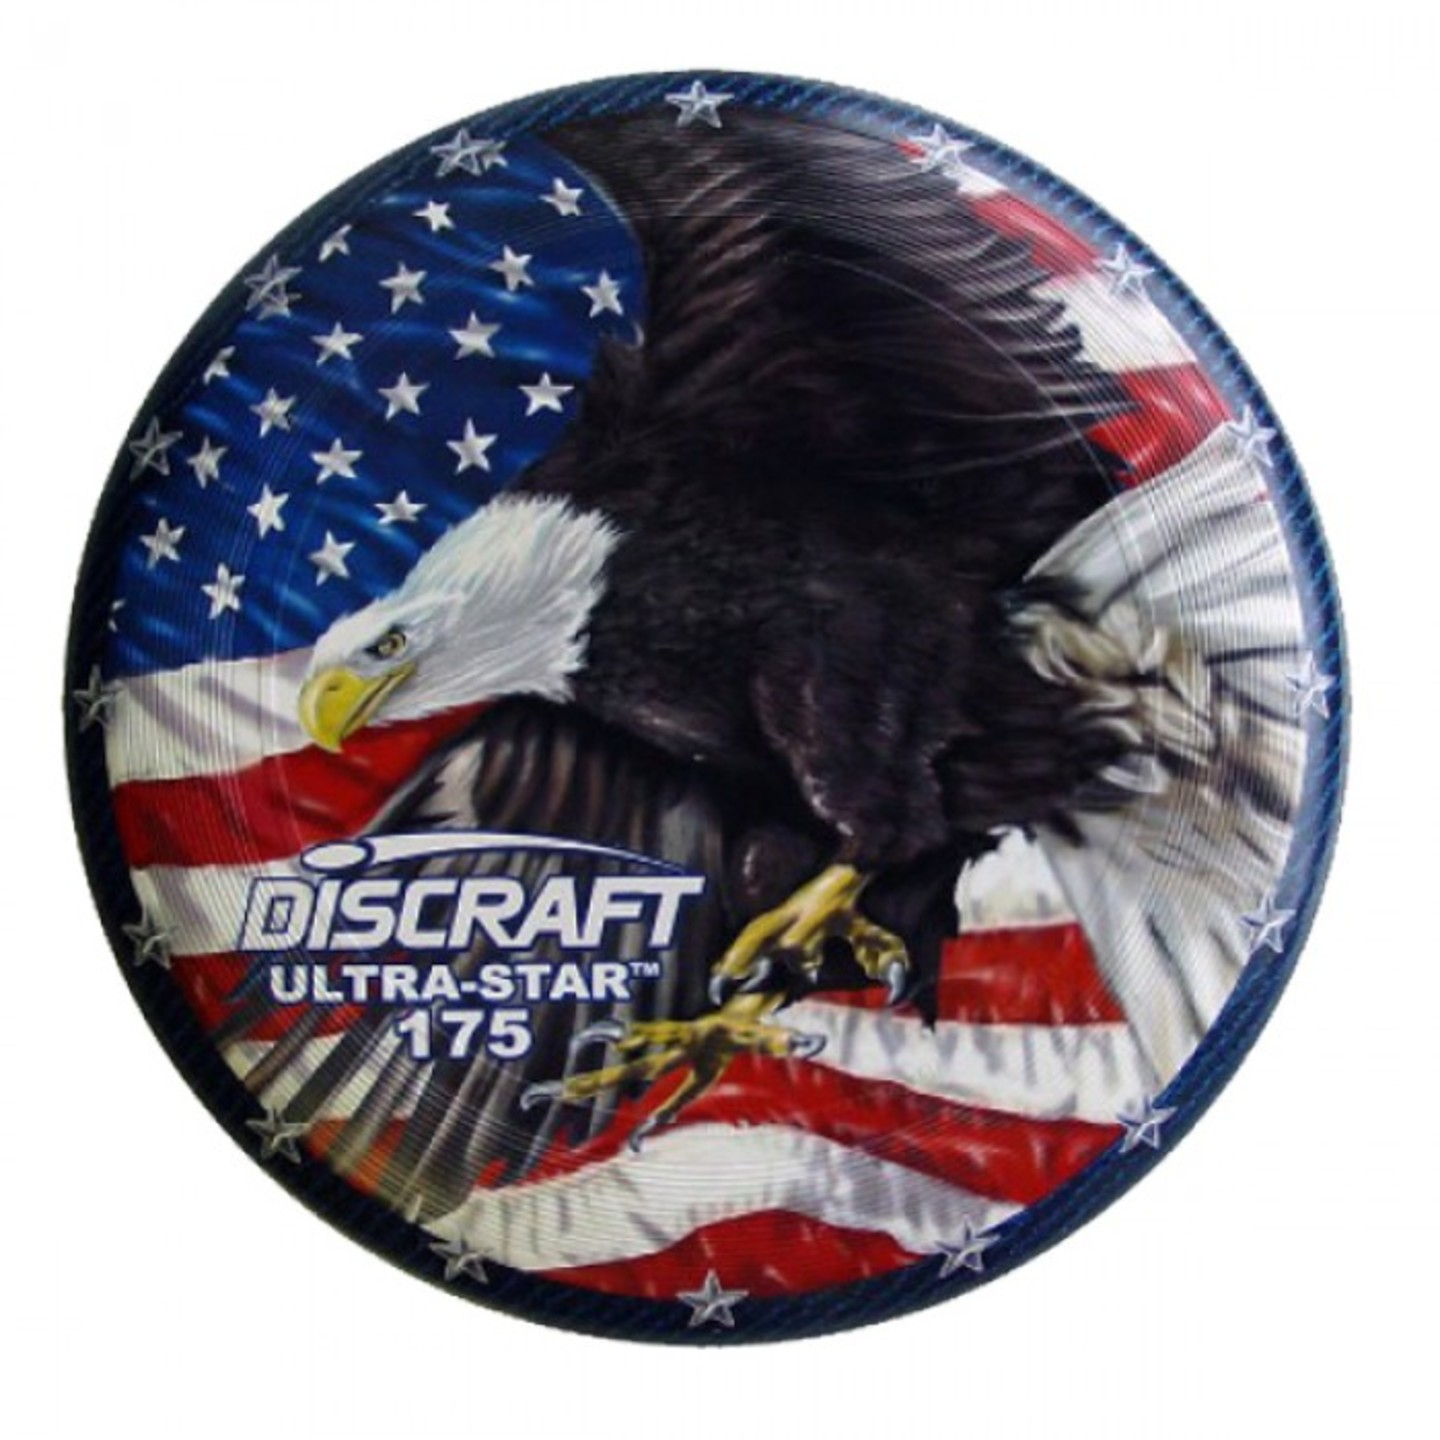 Eagle Discraft Ultrastar